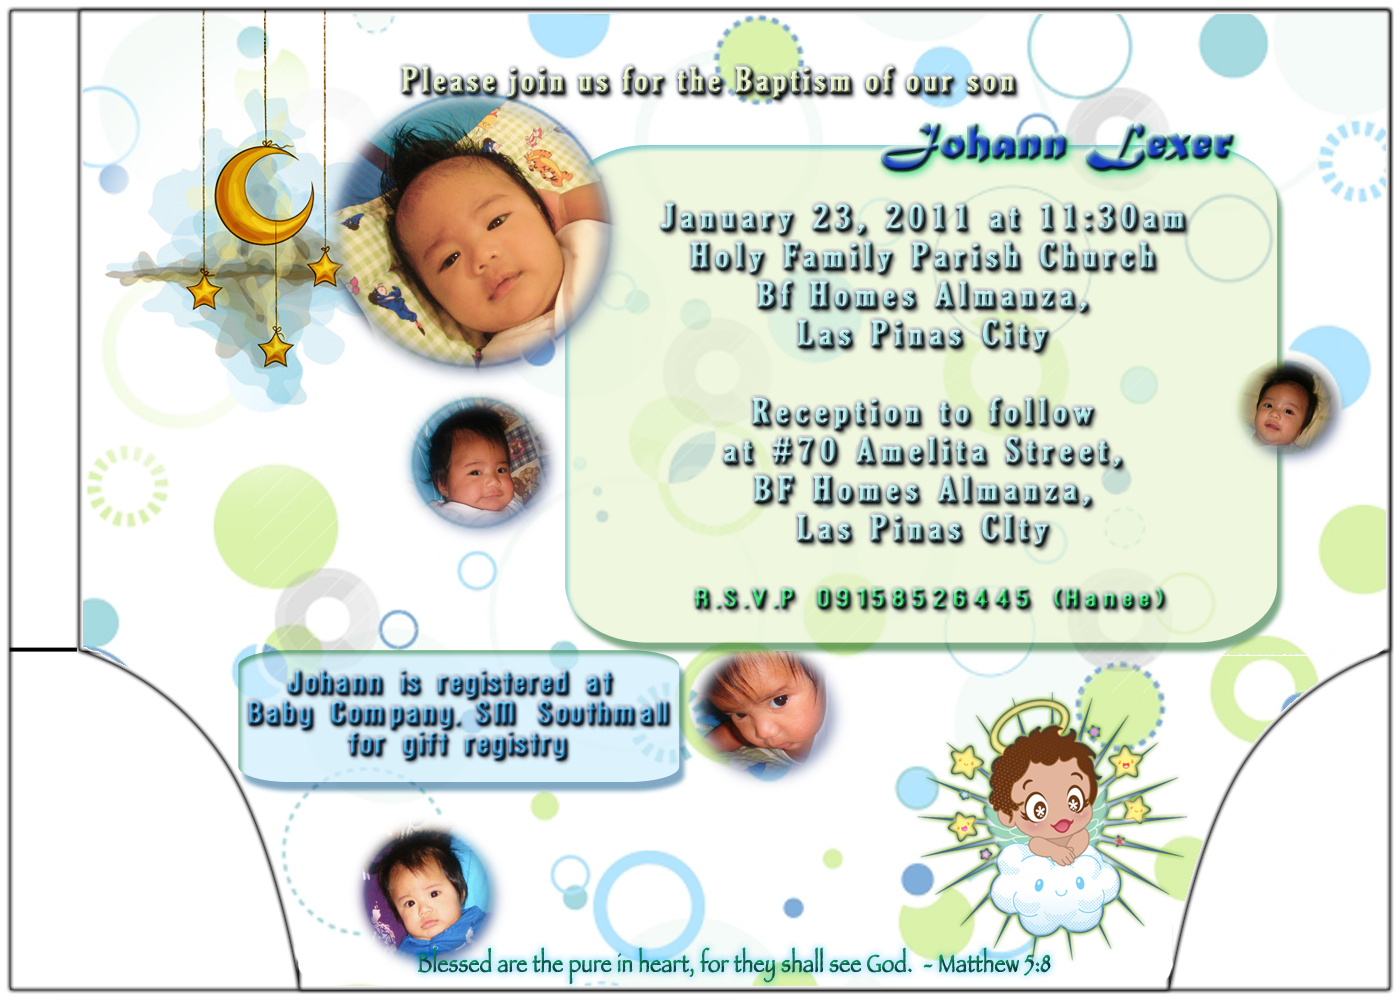 Pulotpukyutan christening last january 23 2011 super late post maarte ako so i thought of a lot of pakulo to make his invitation unique somehow so i designed it this way and cut it that way stopboris Images